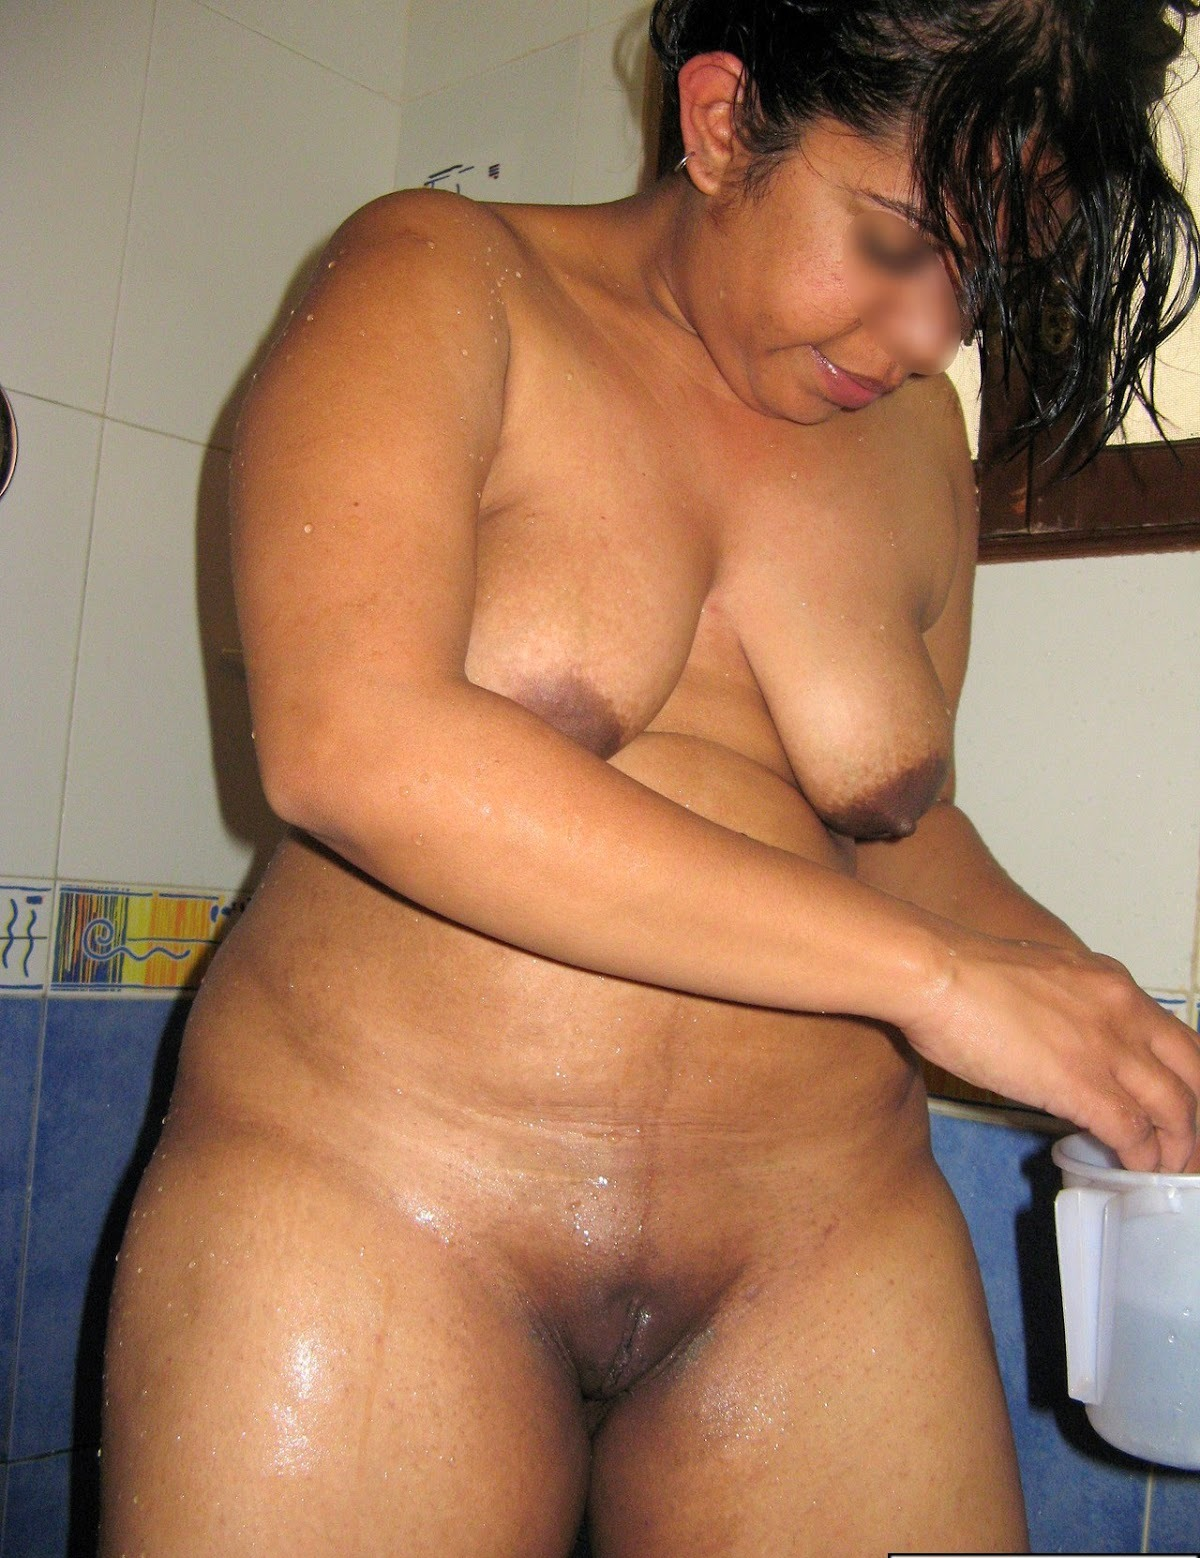 are mistaken. can ebony somali women porn rare good luck! What